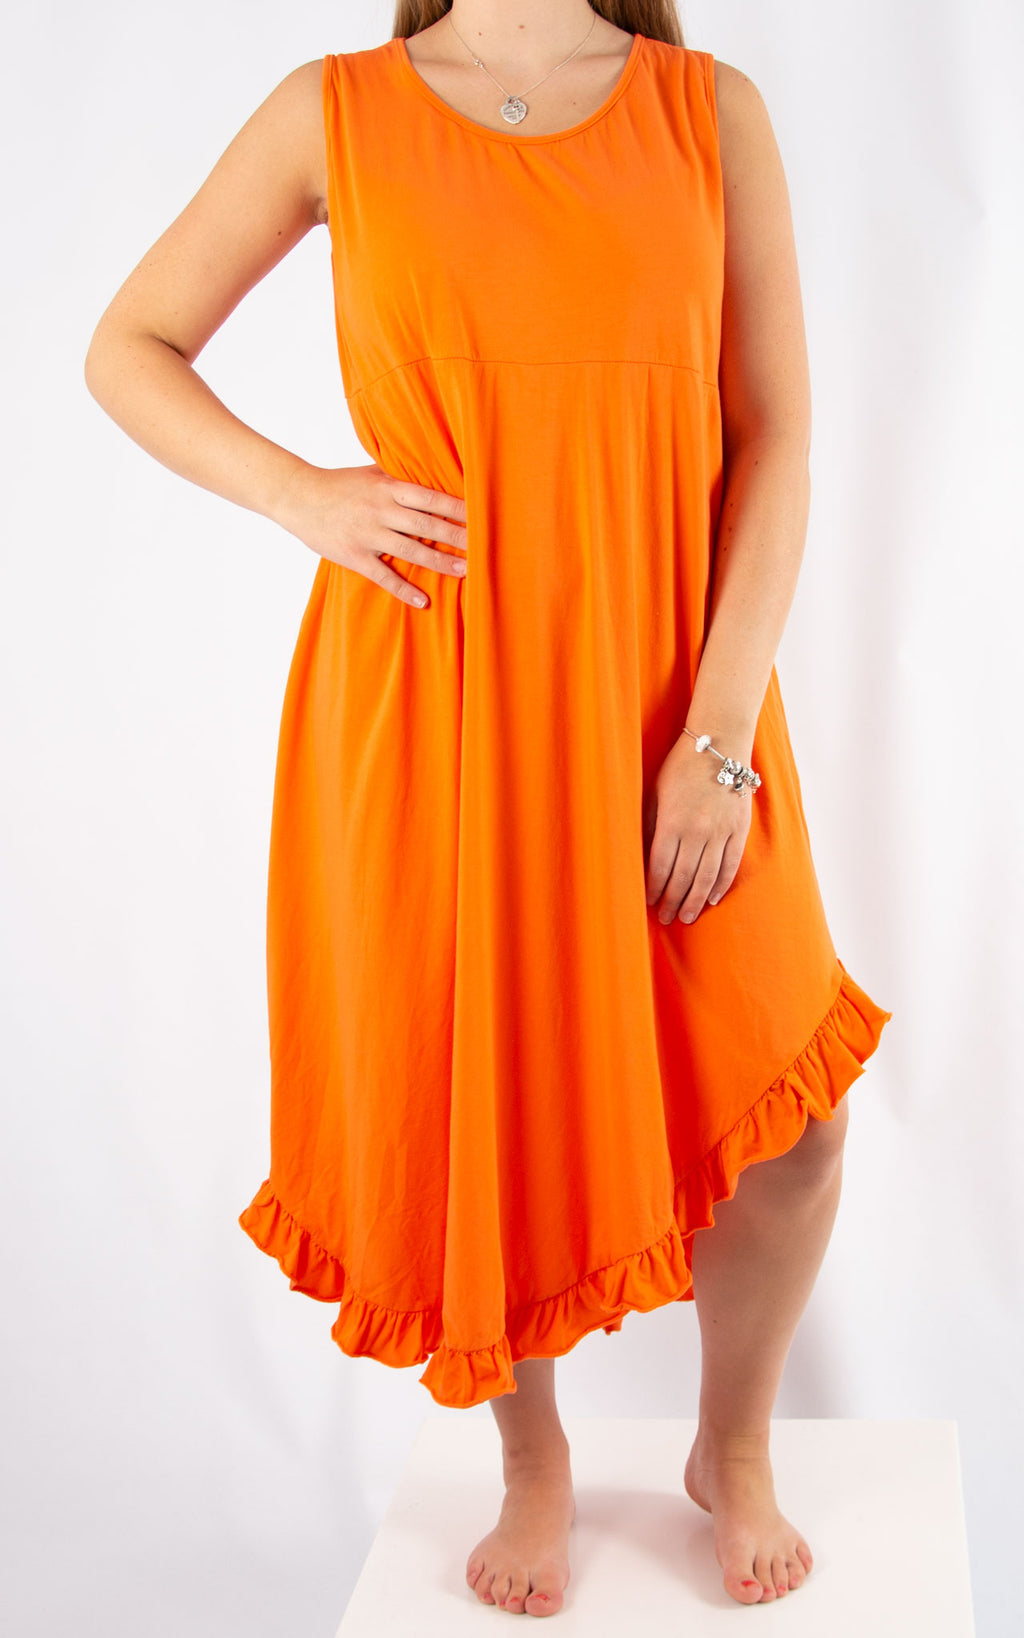 Orange Ruffle Maxi Dress | Made in Italy